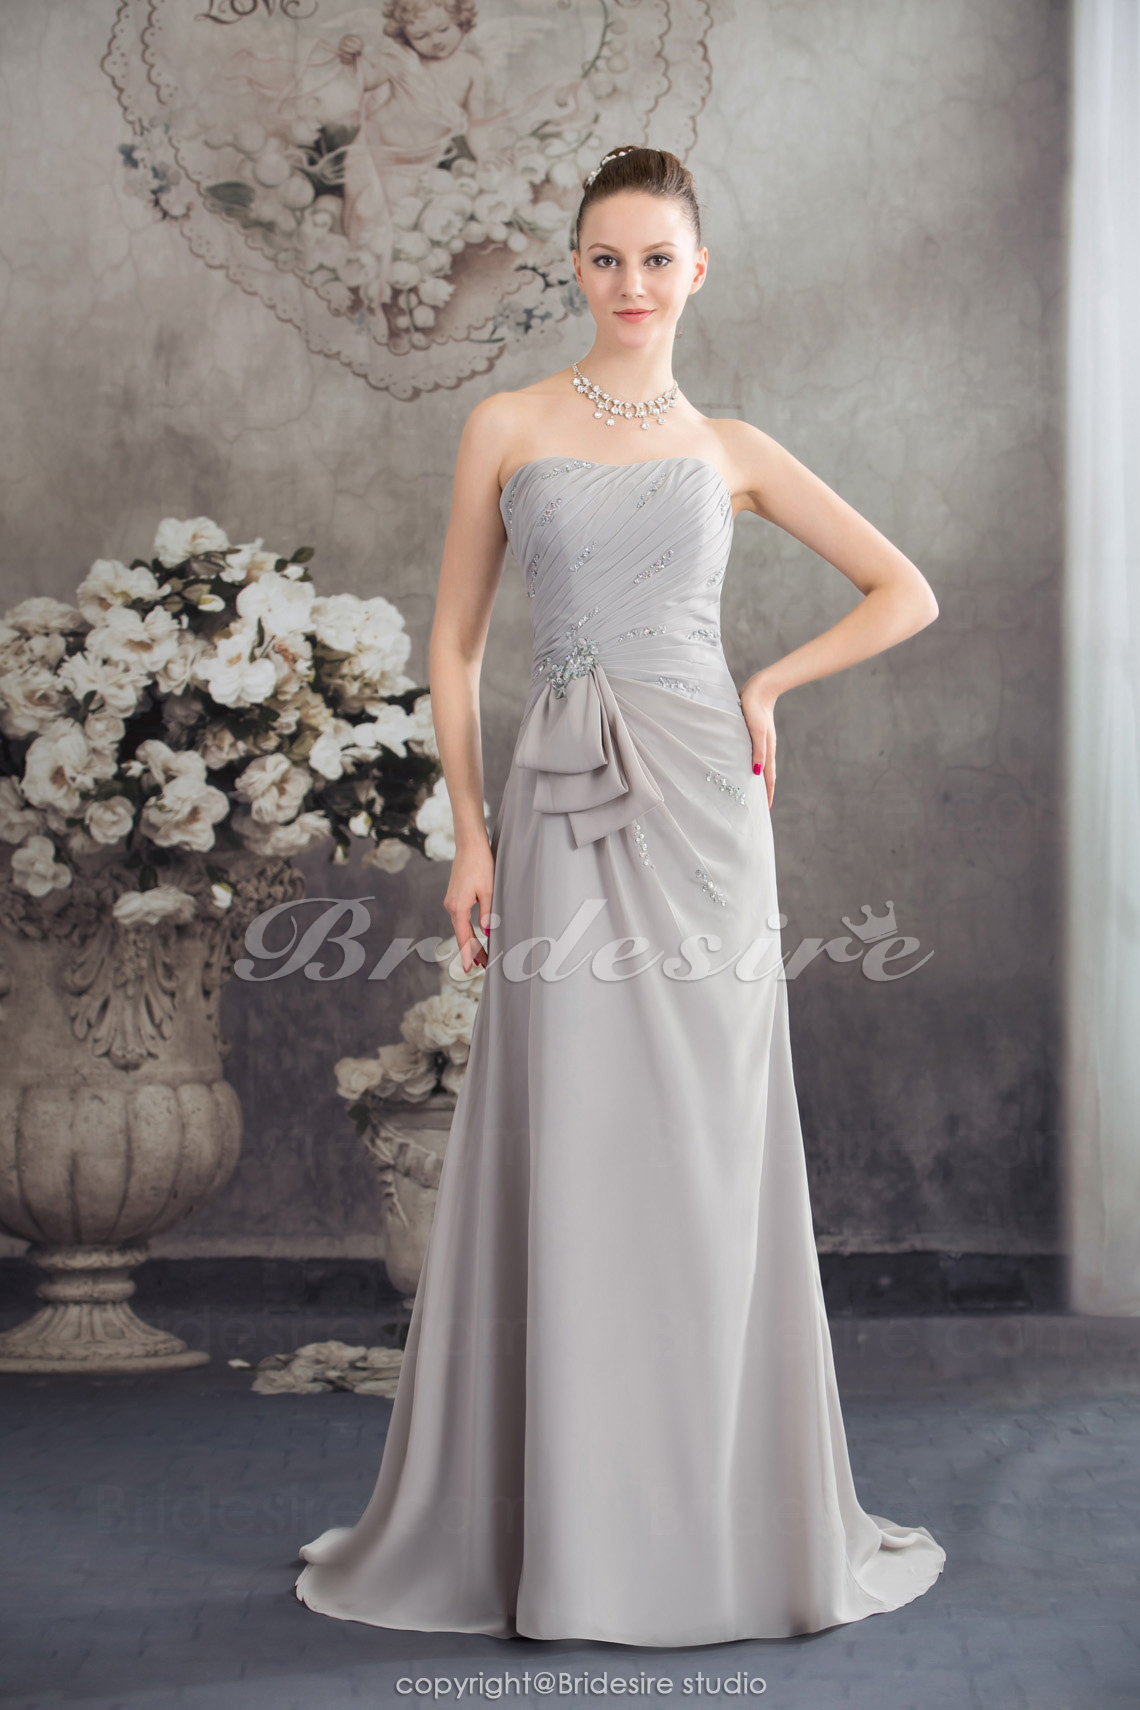 A-line Strapless Floor-length Sleeveless Chiffon Mother of the Bride Dress